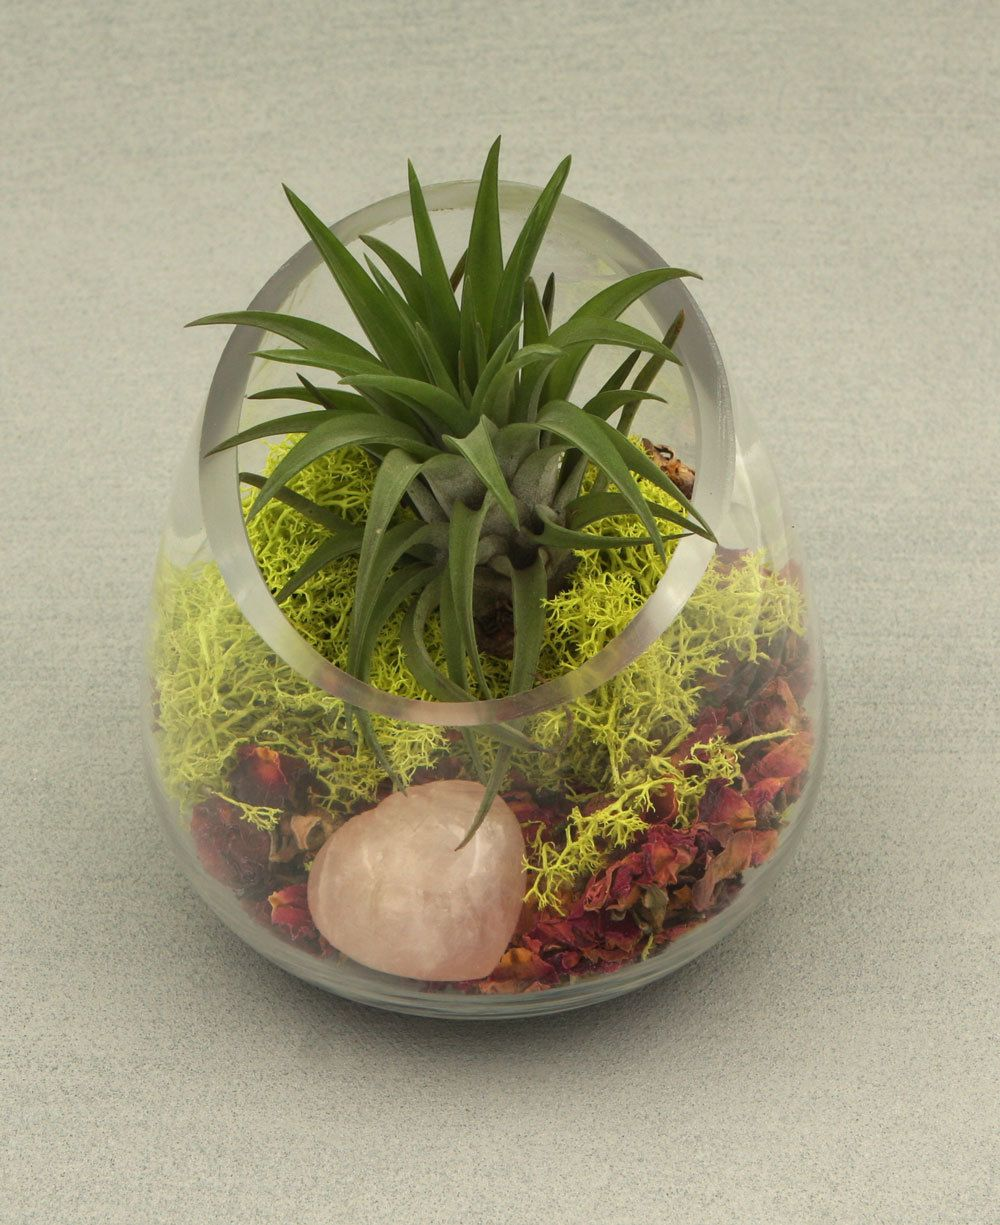 Rose Quartz Healing Love Terrarium With Air Plant Air Plants  # Faire Support Aquarium Beton Cellulaire